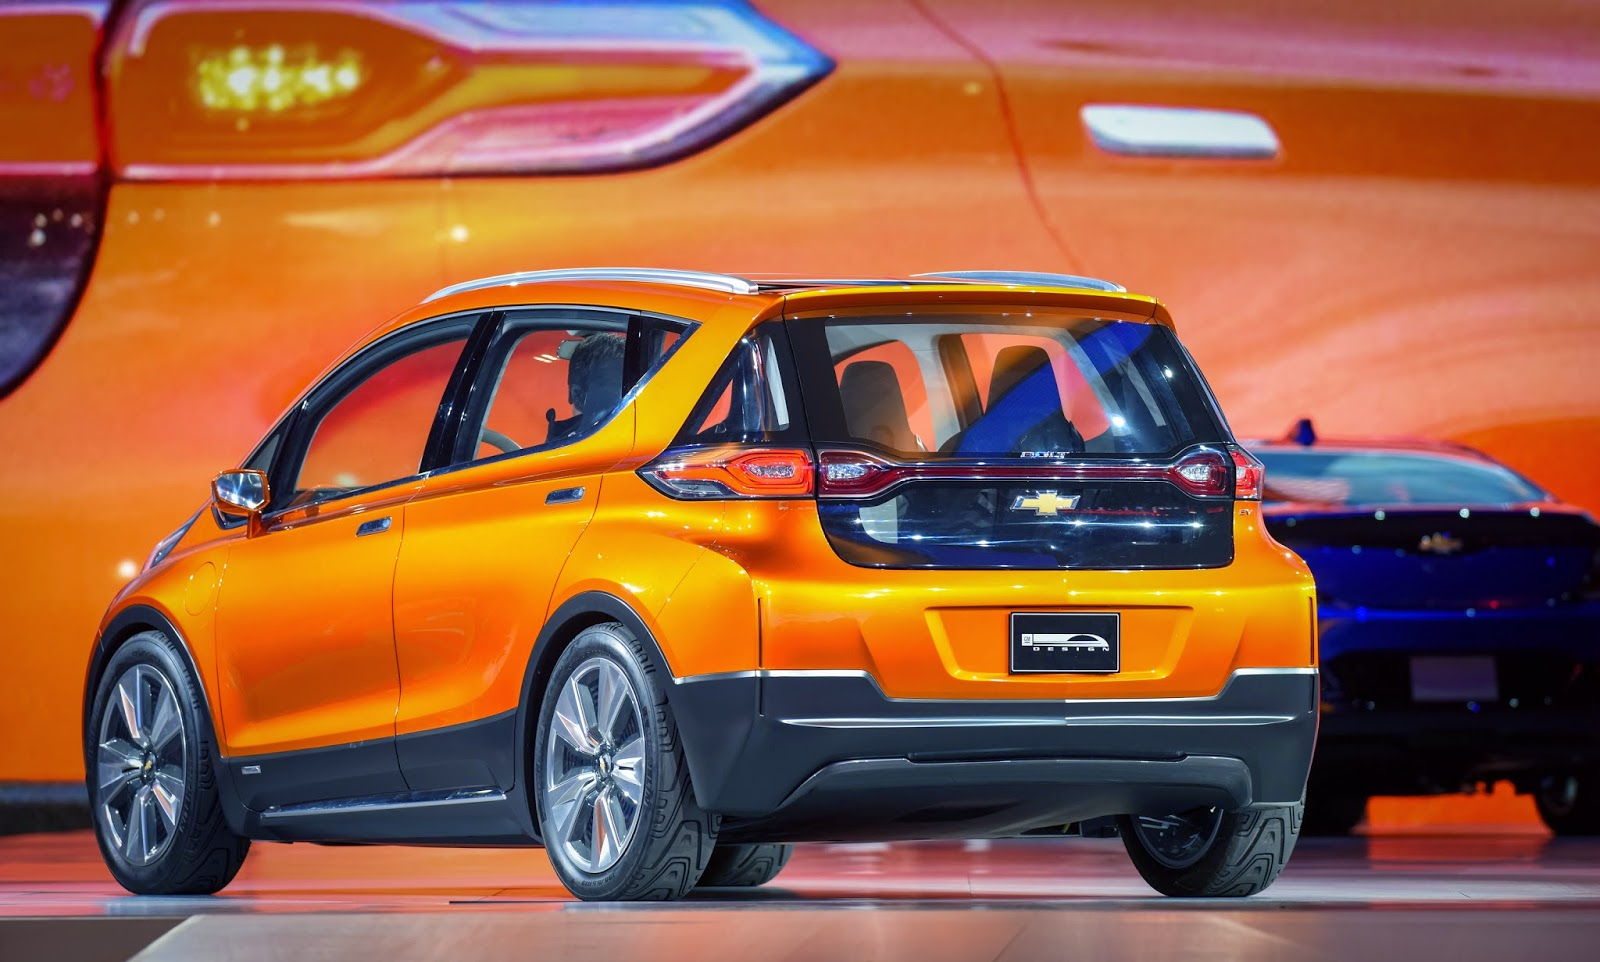 Chevrolet Officially Confirms Production of Bolt EV